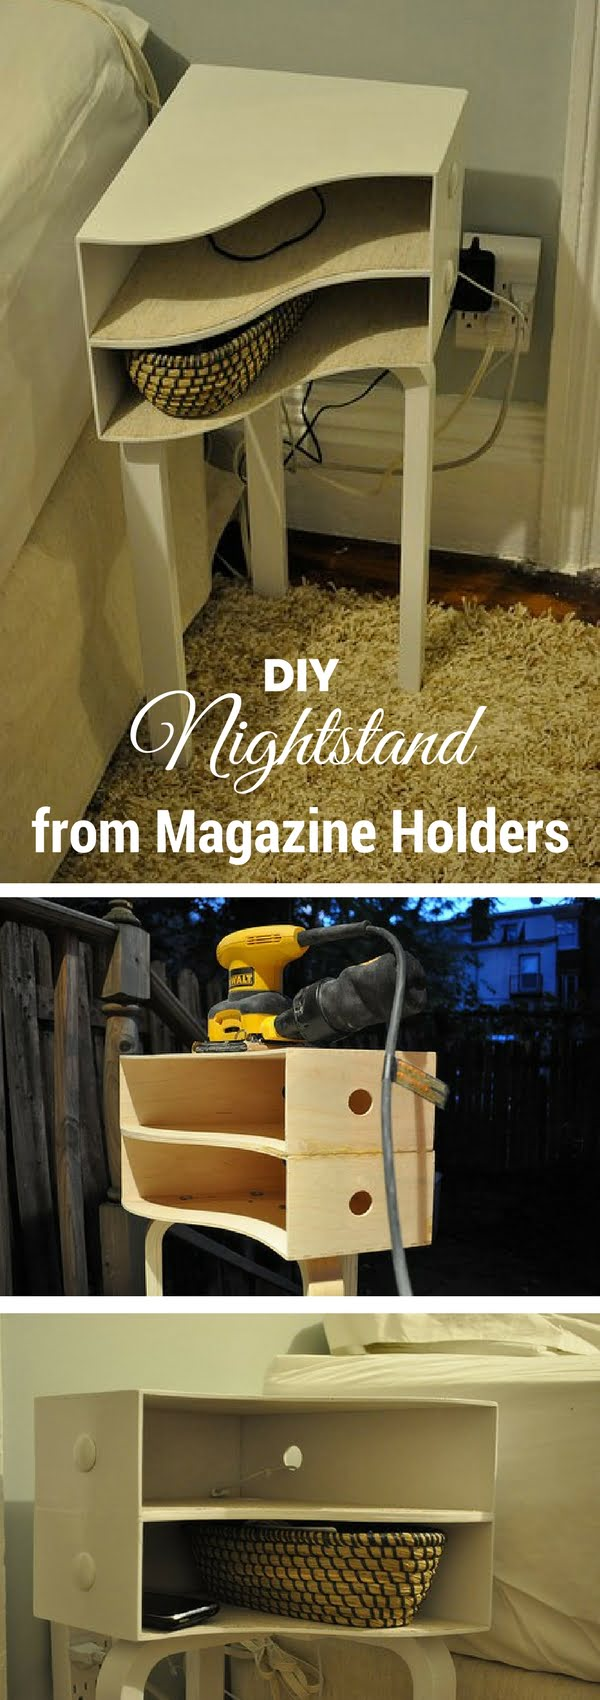 25 Easy Diy Nightstand Ideas That You Can Build On A Budget